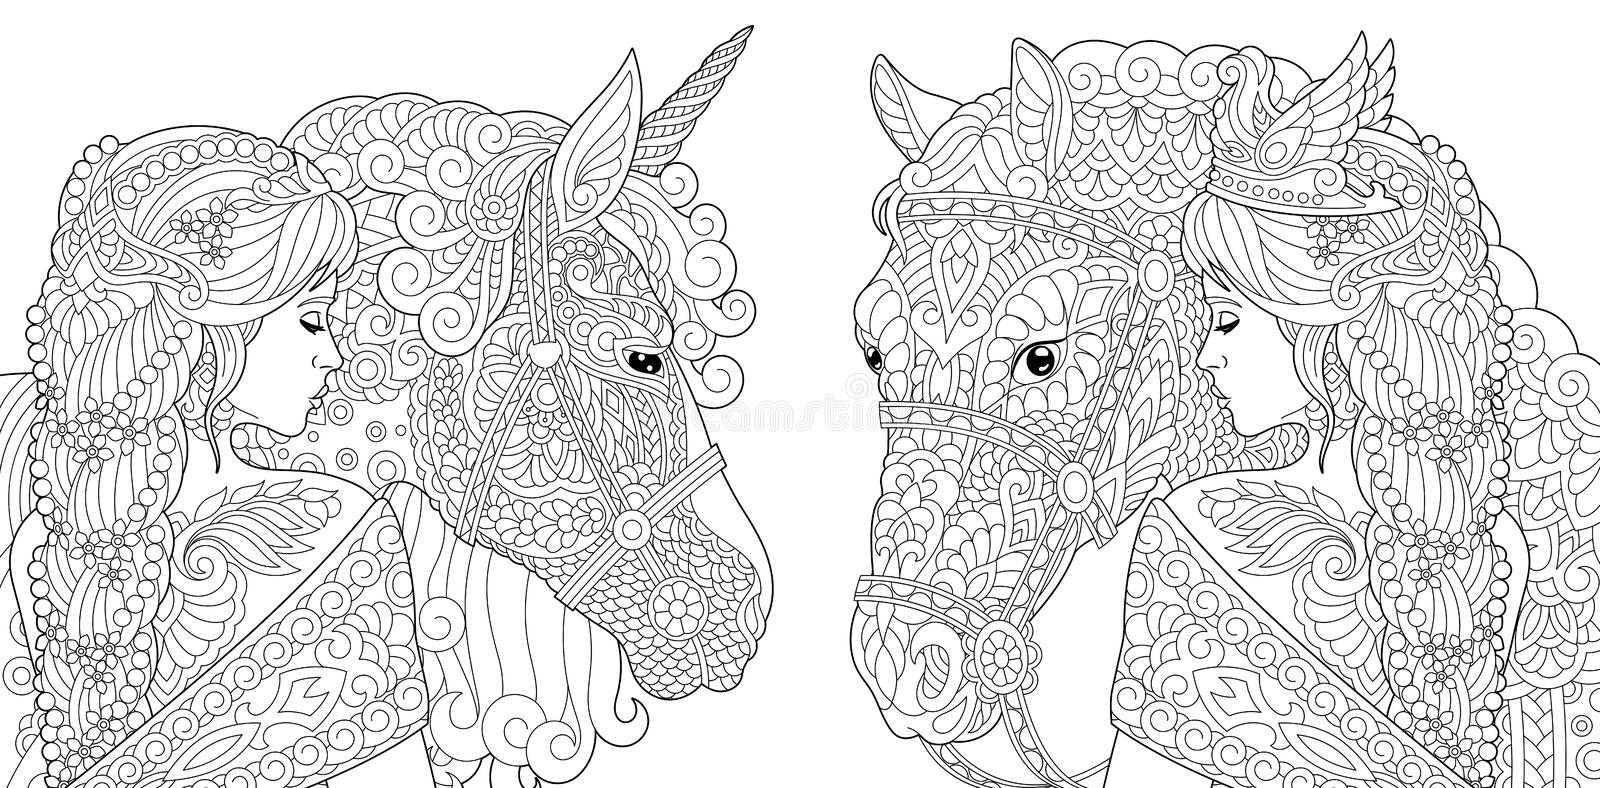 Coloring Pages. Coloring Book for adults. Colouring pictures with fantasy girl and unicorn horse drawn in zentangle style. Vector. Illustration stock illustration